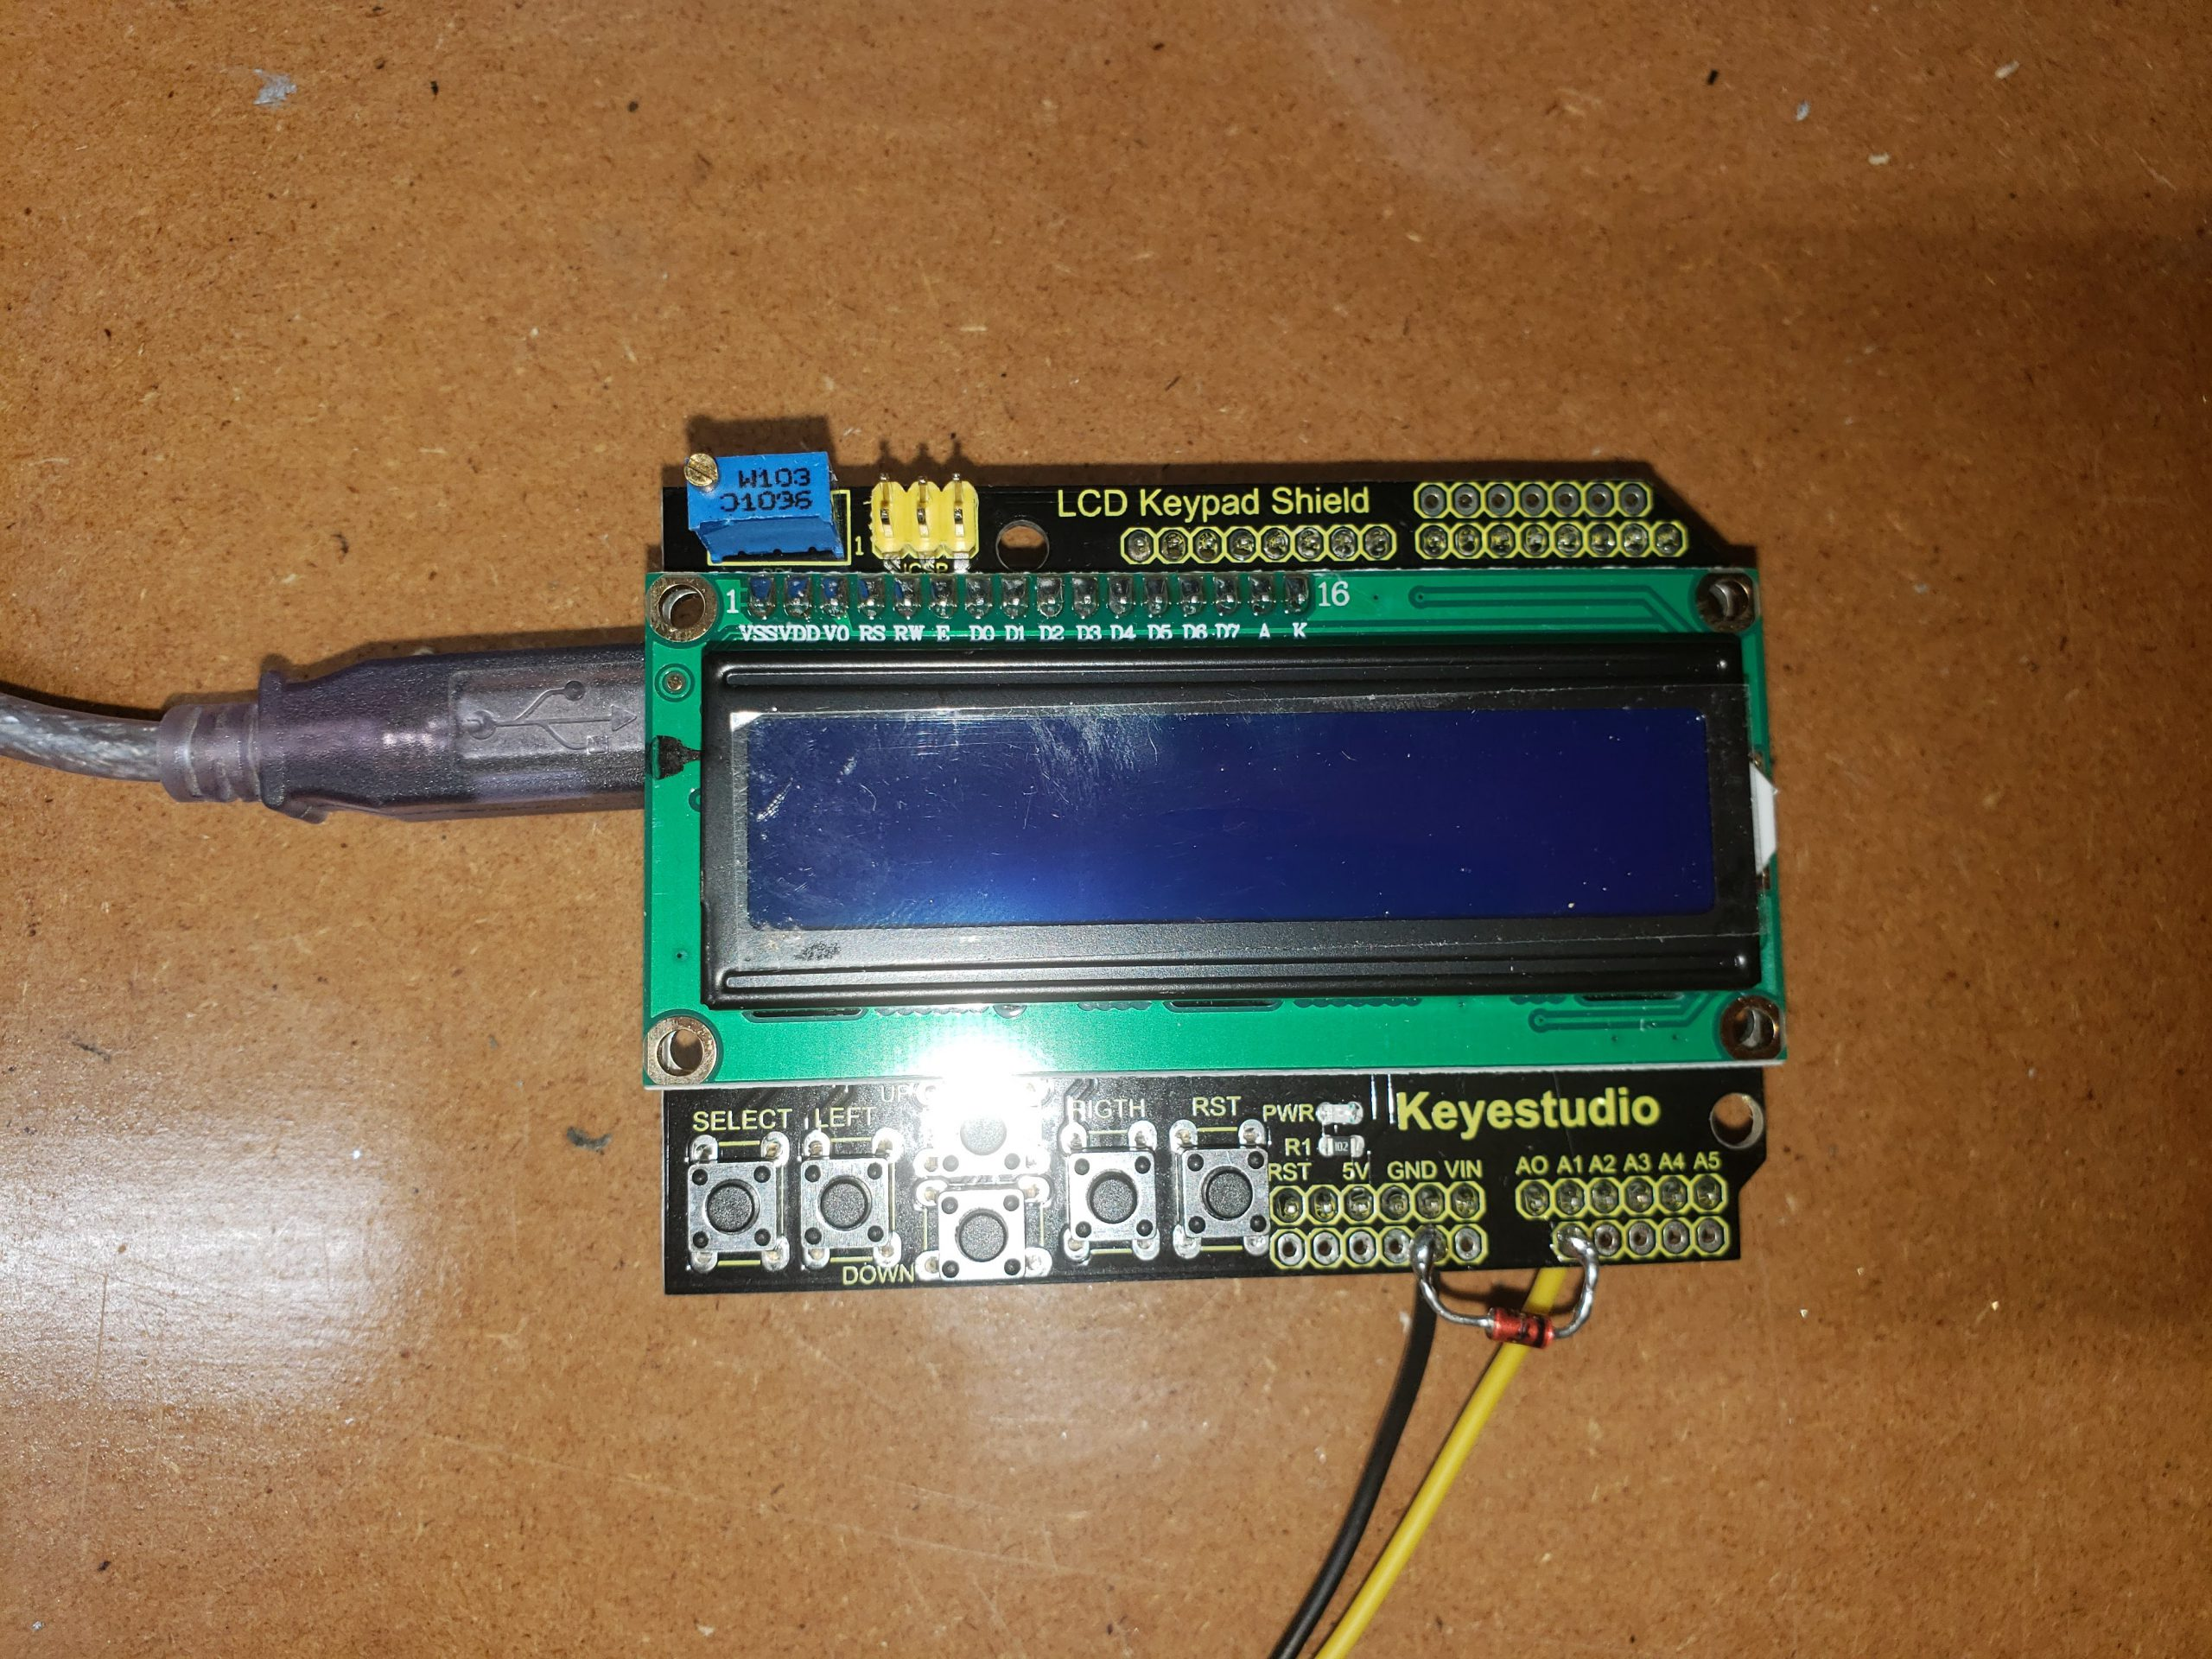 Display shield with protection diode and input wires